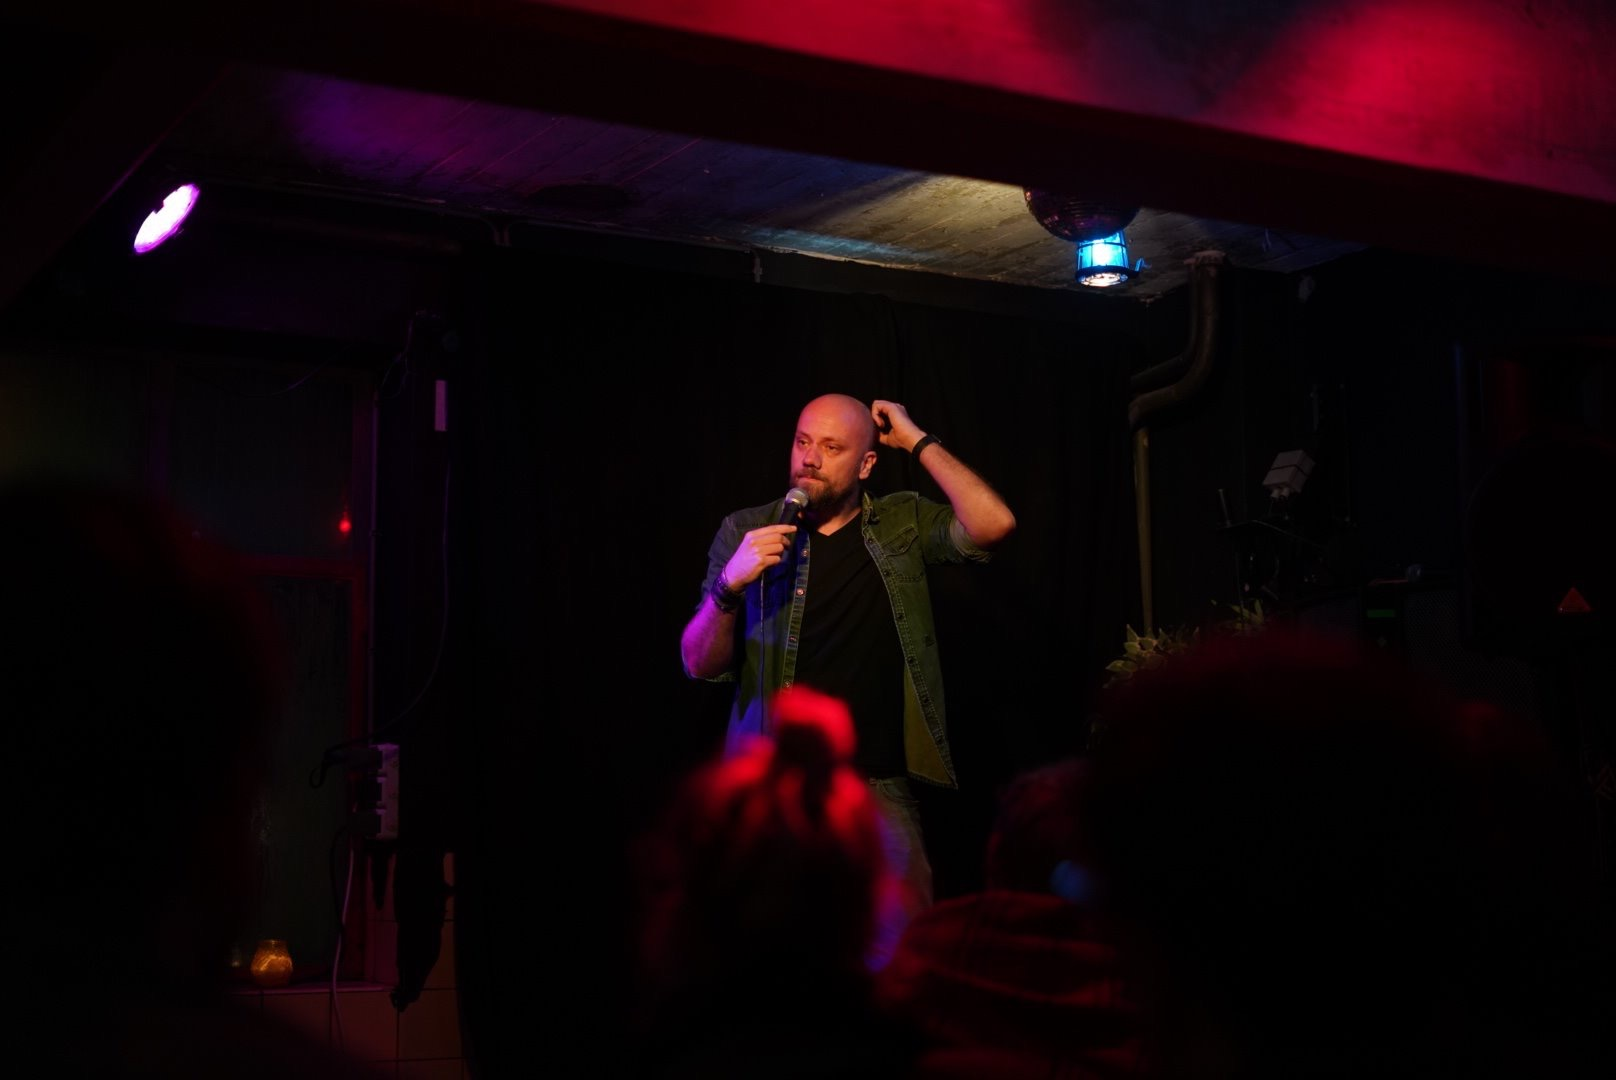 Fedor preforming in Maastricht, The Netherlands